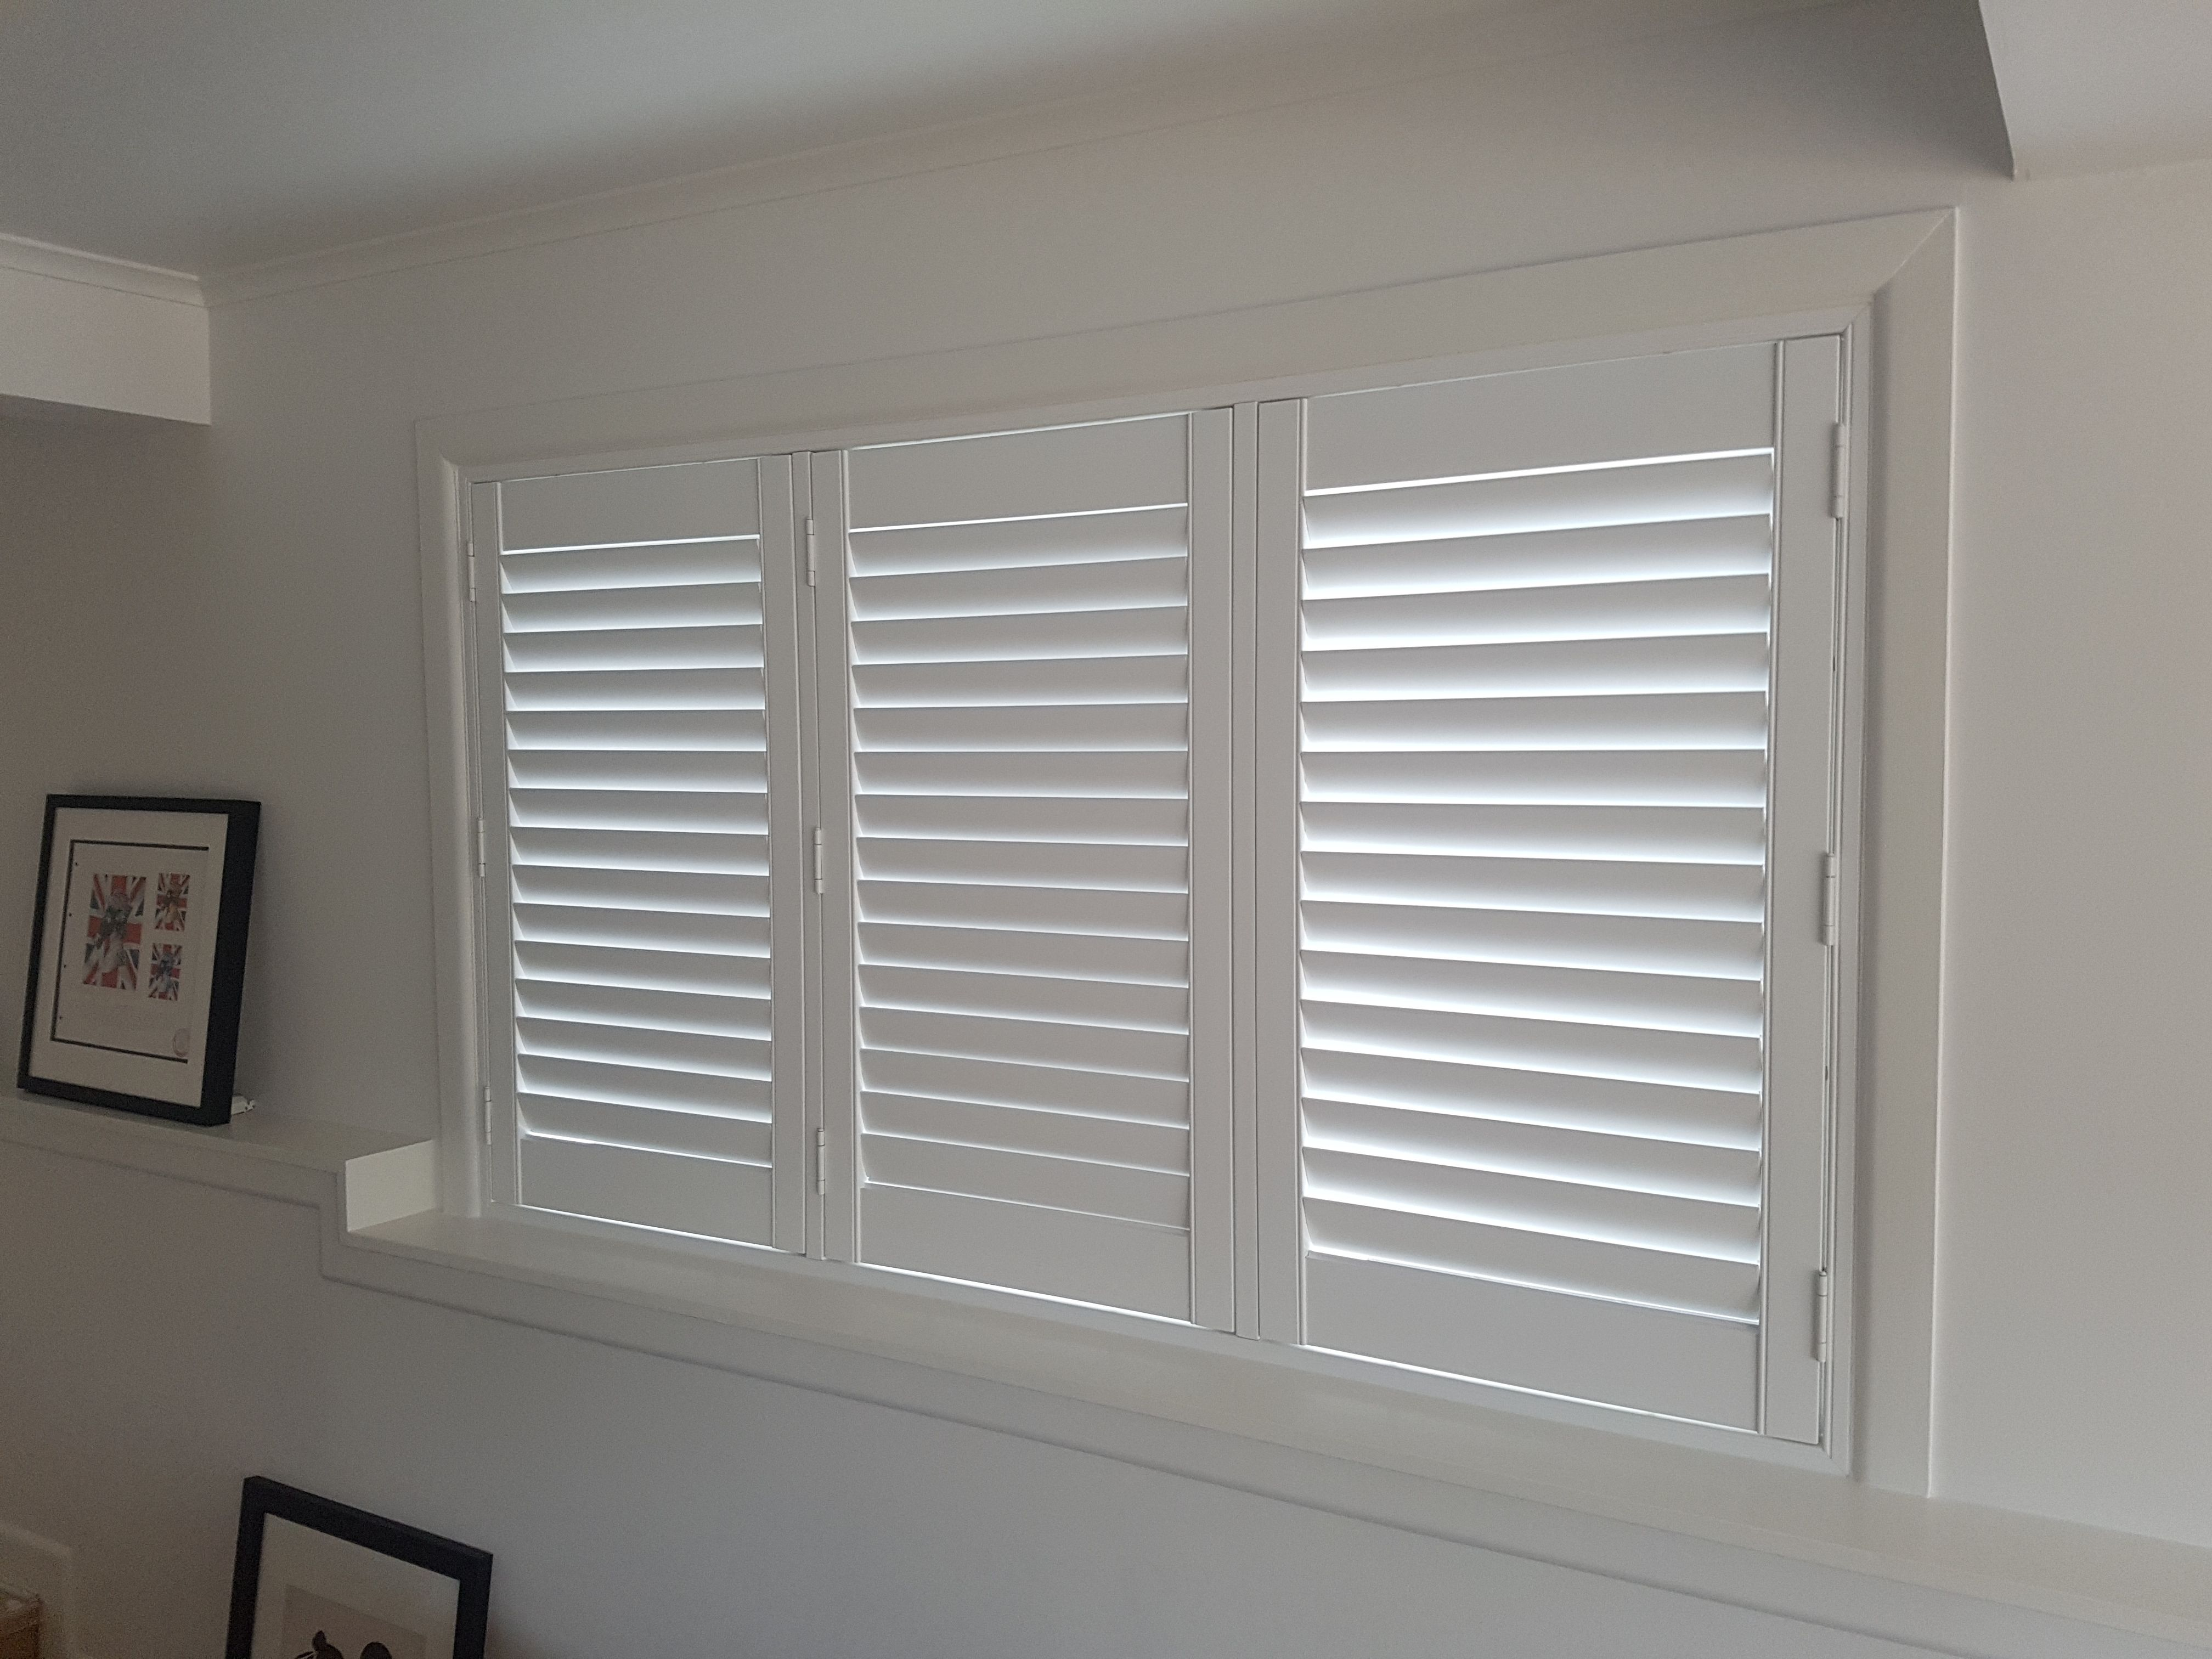 Marika S New Shutters Installed Downstairs To Match The Previously Installed Ones Upstairs Blindsonline Net Nz Shutters Blinds Blinds Online